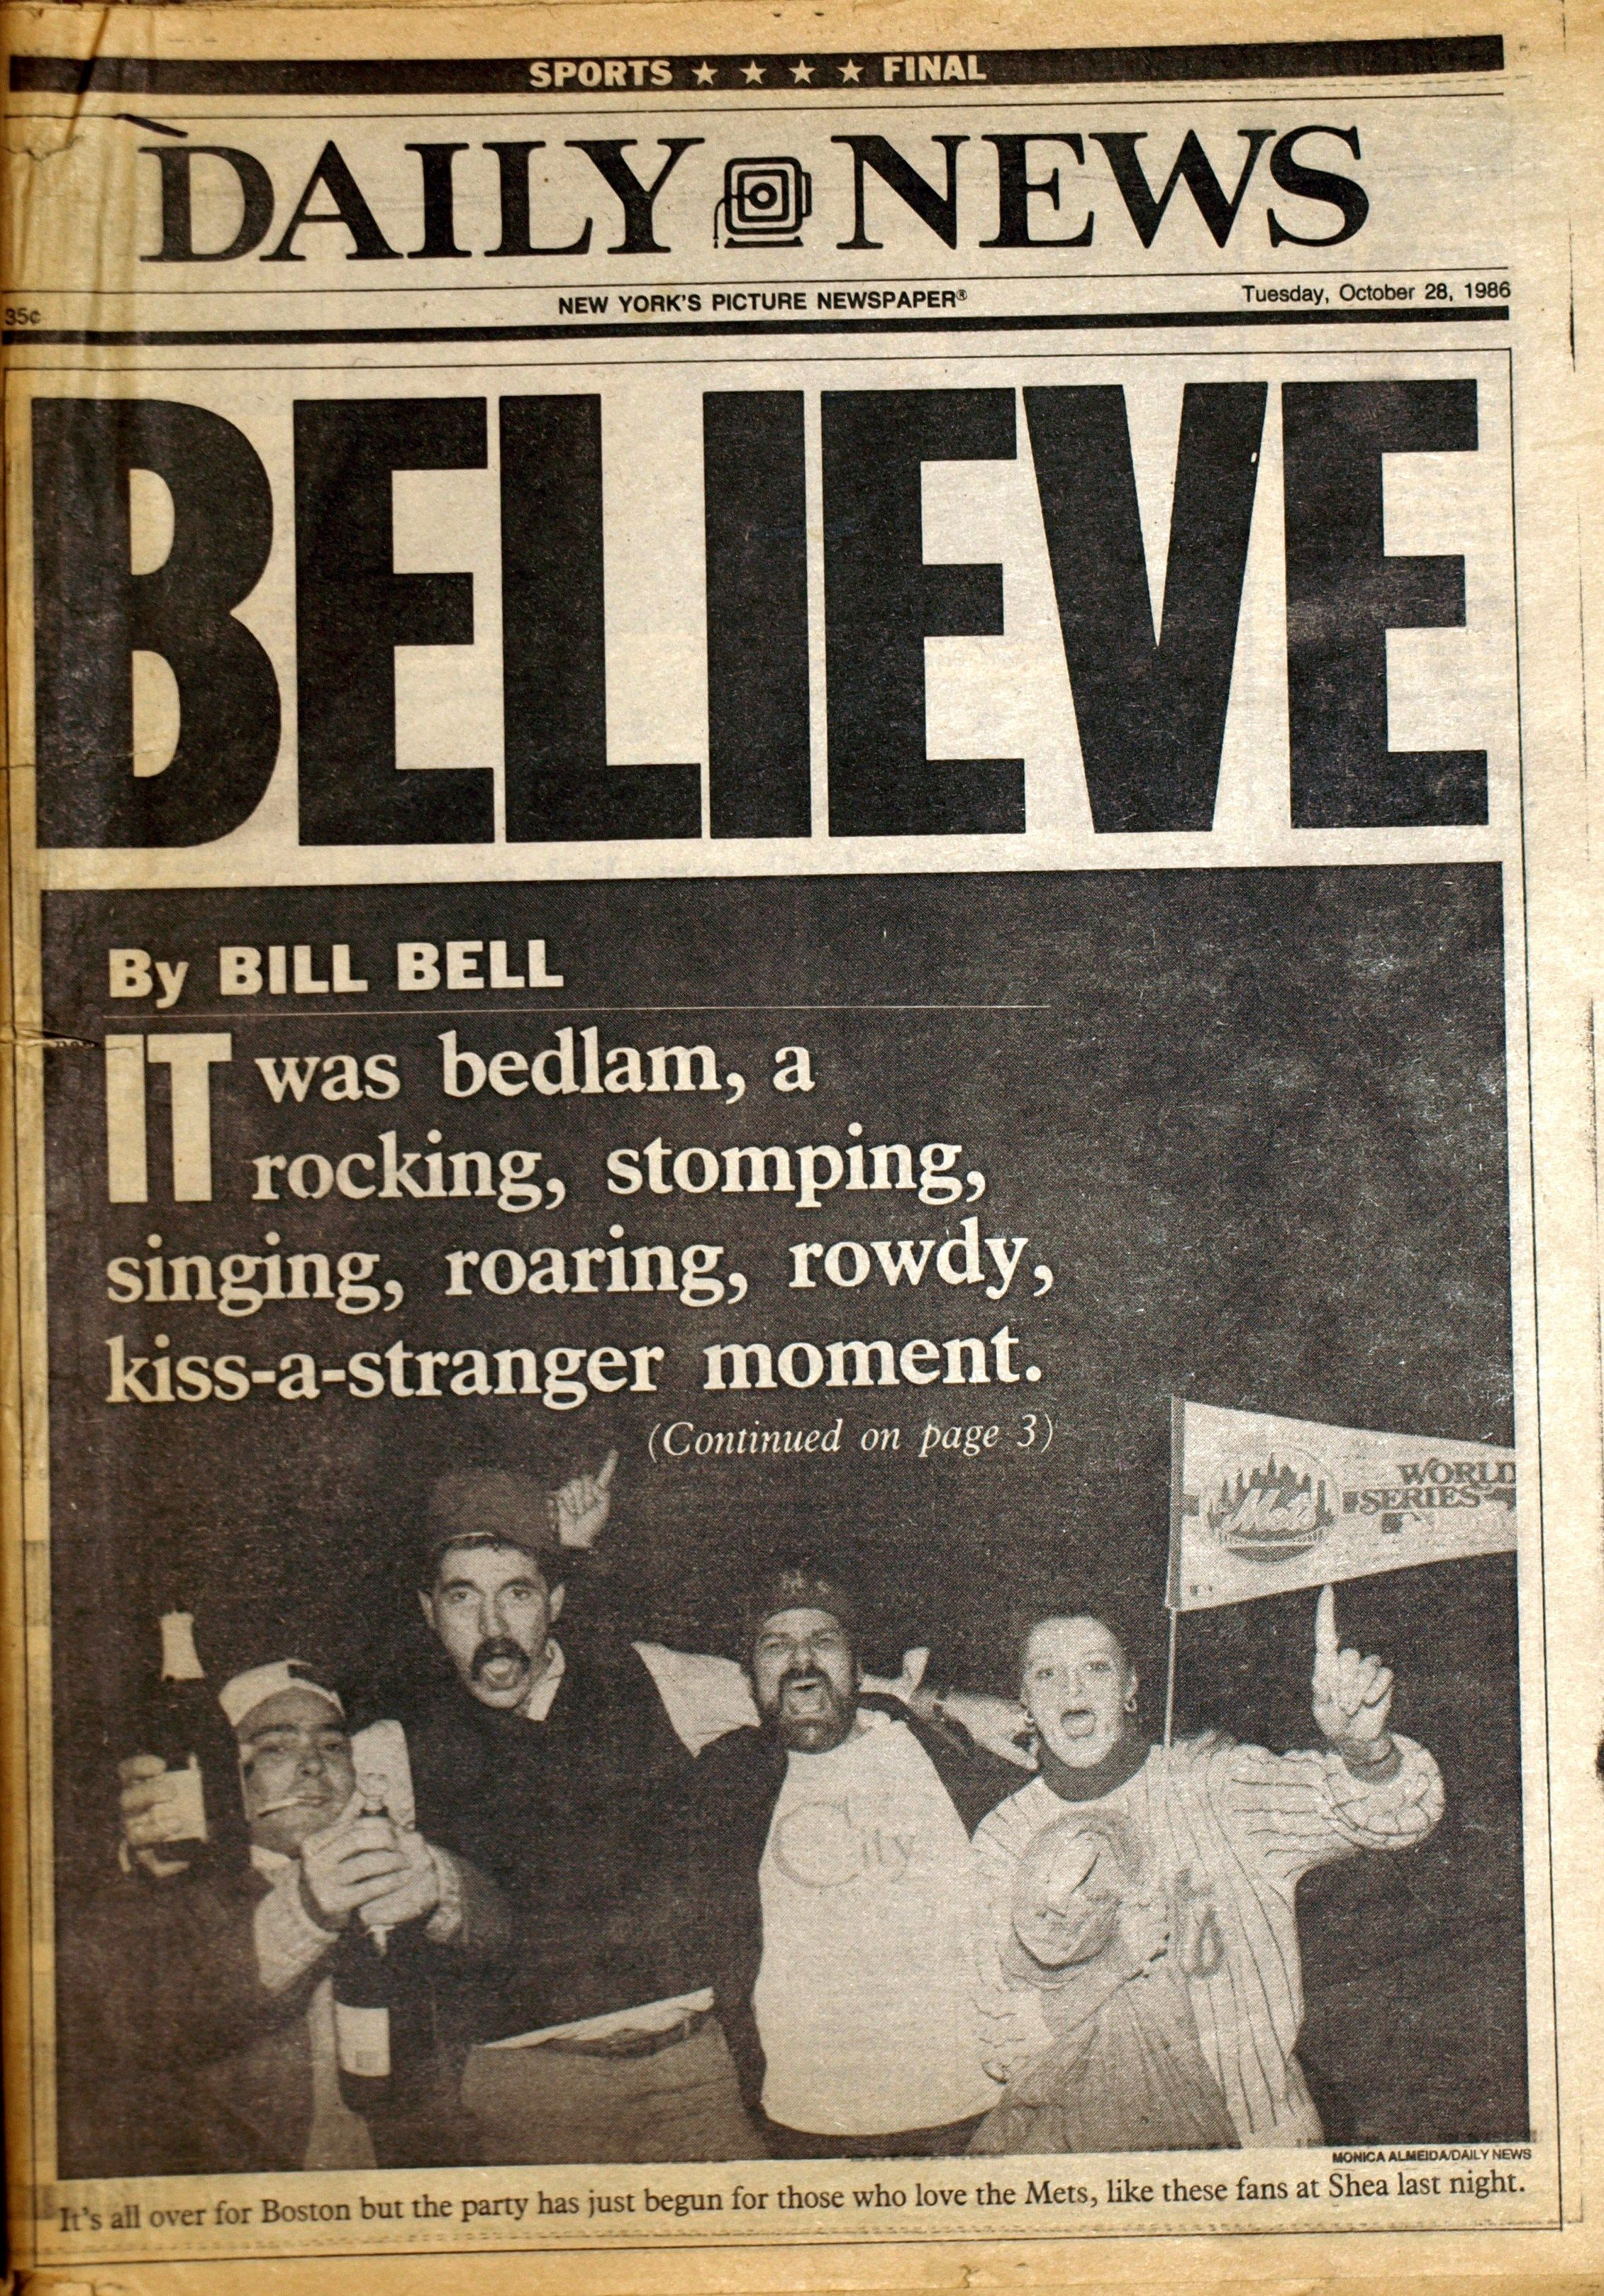 f60bc0cb2 1986 World Series - Mets. 1986 World Series Game 7 - DAILY NEWS Front Page